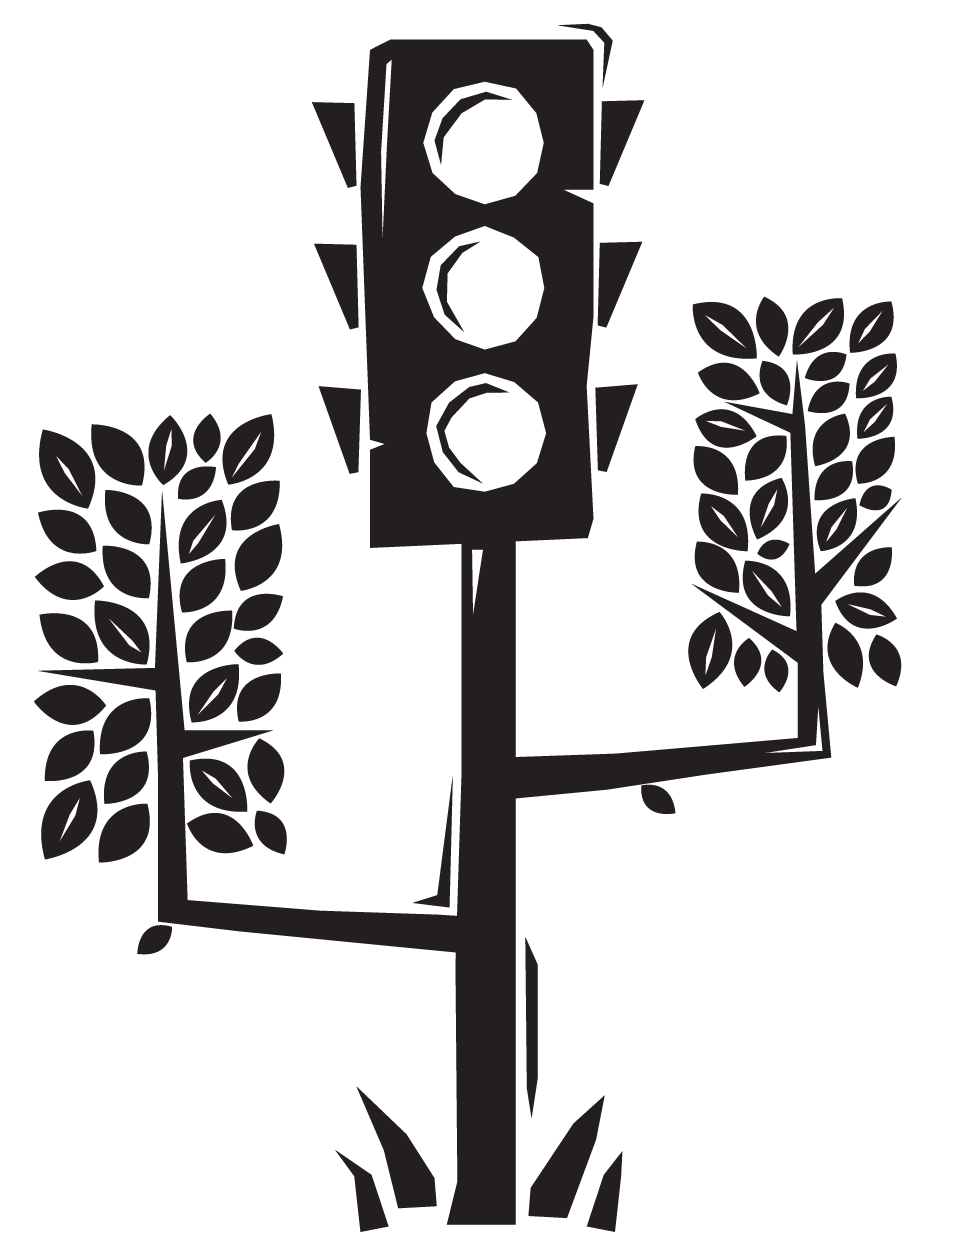 SCF_traffic-lights-02.png